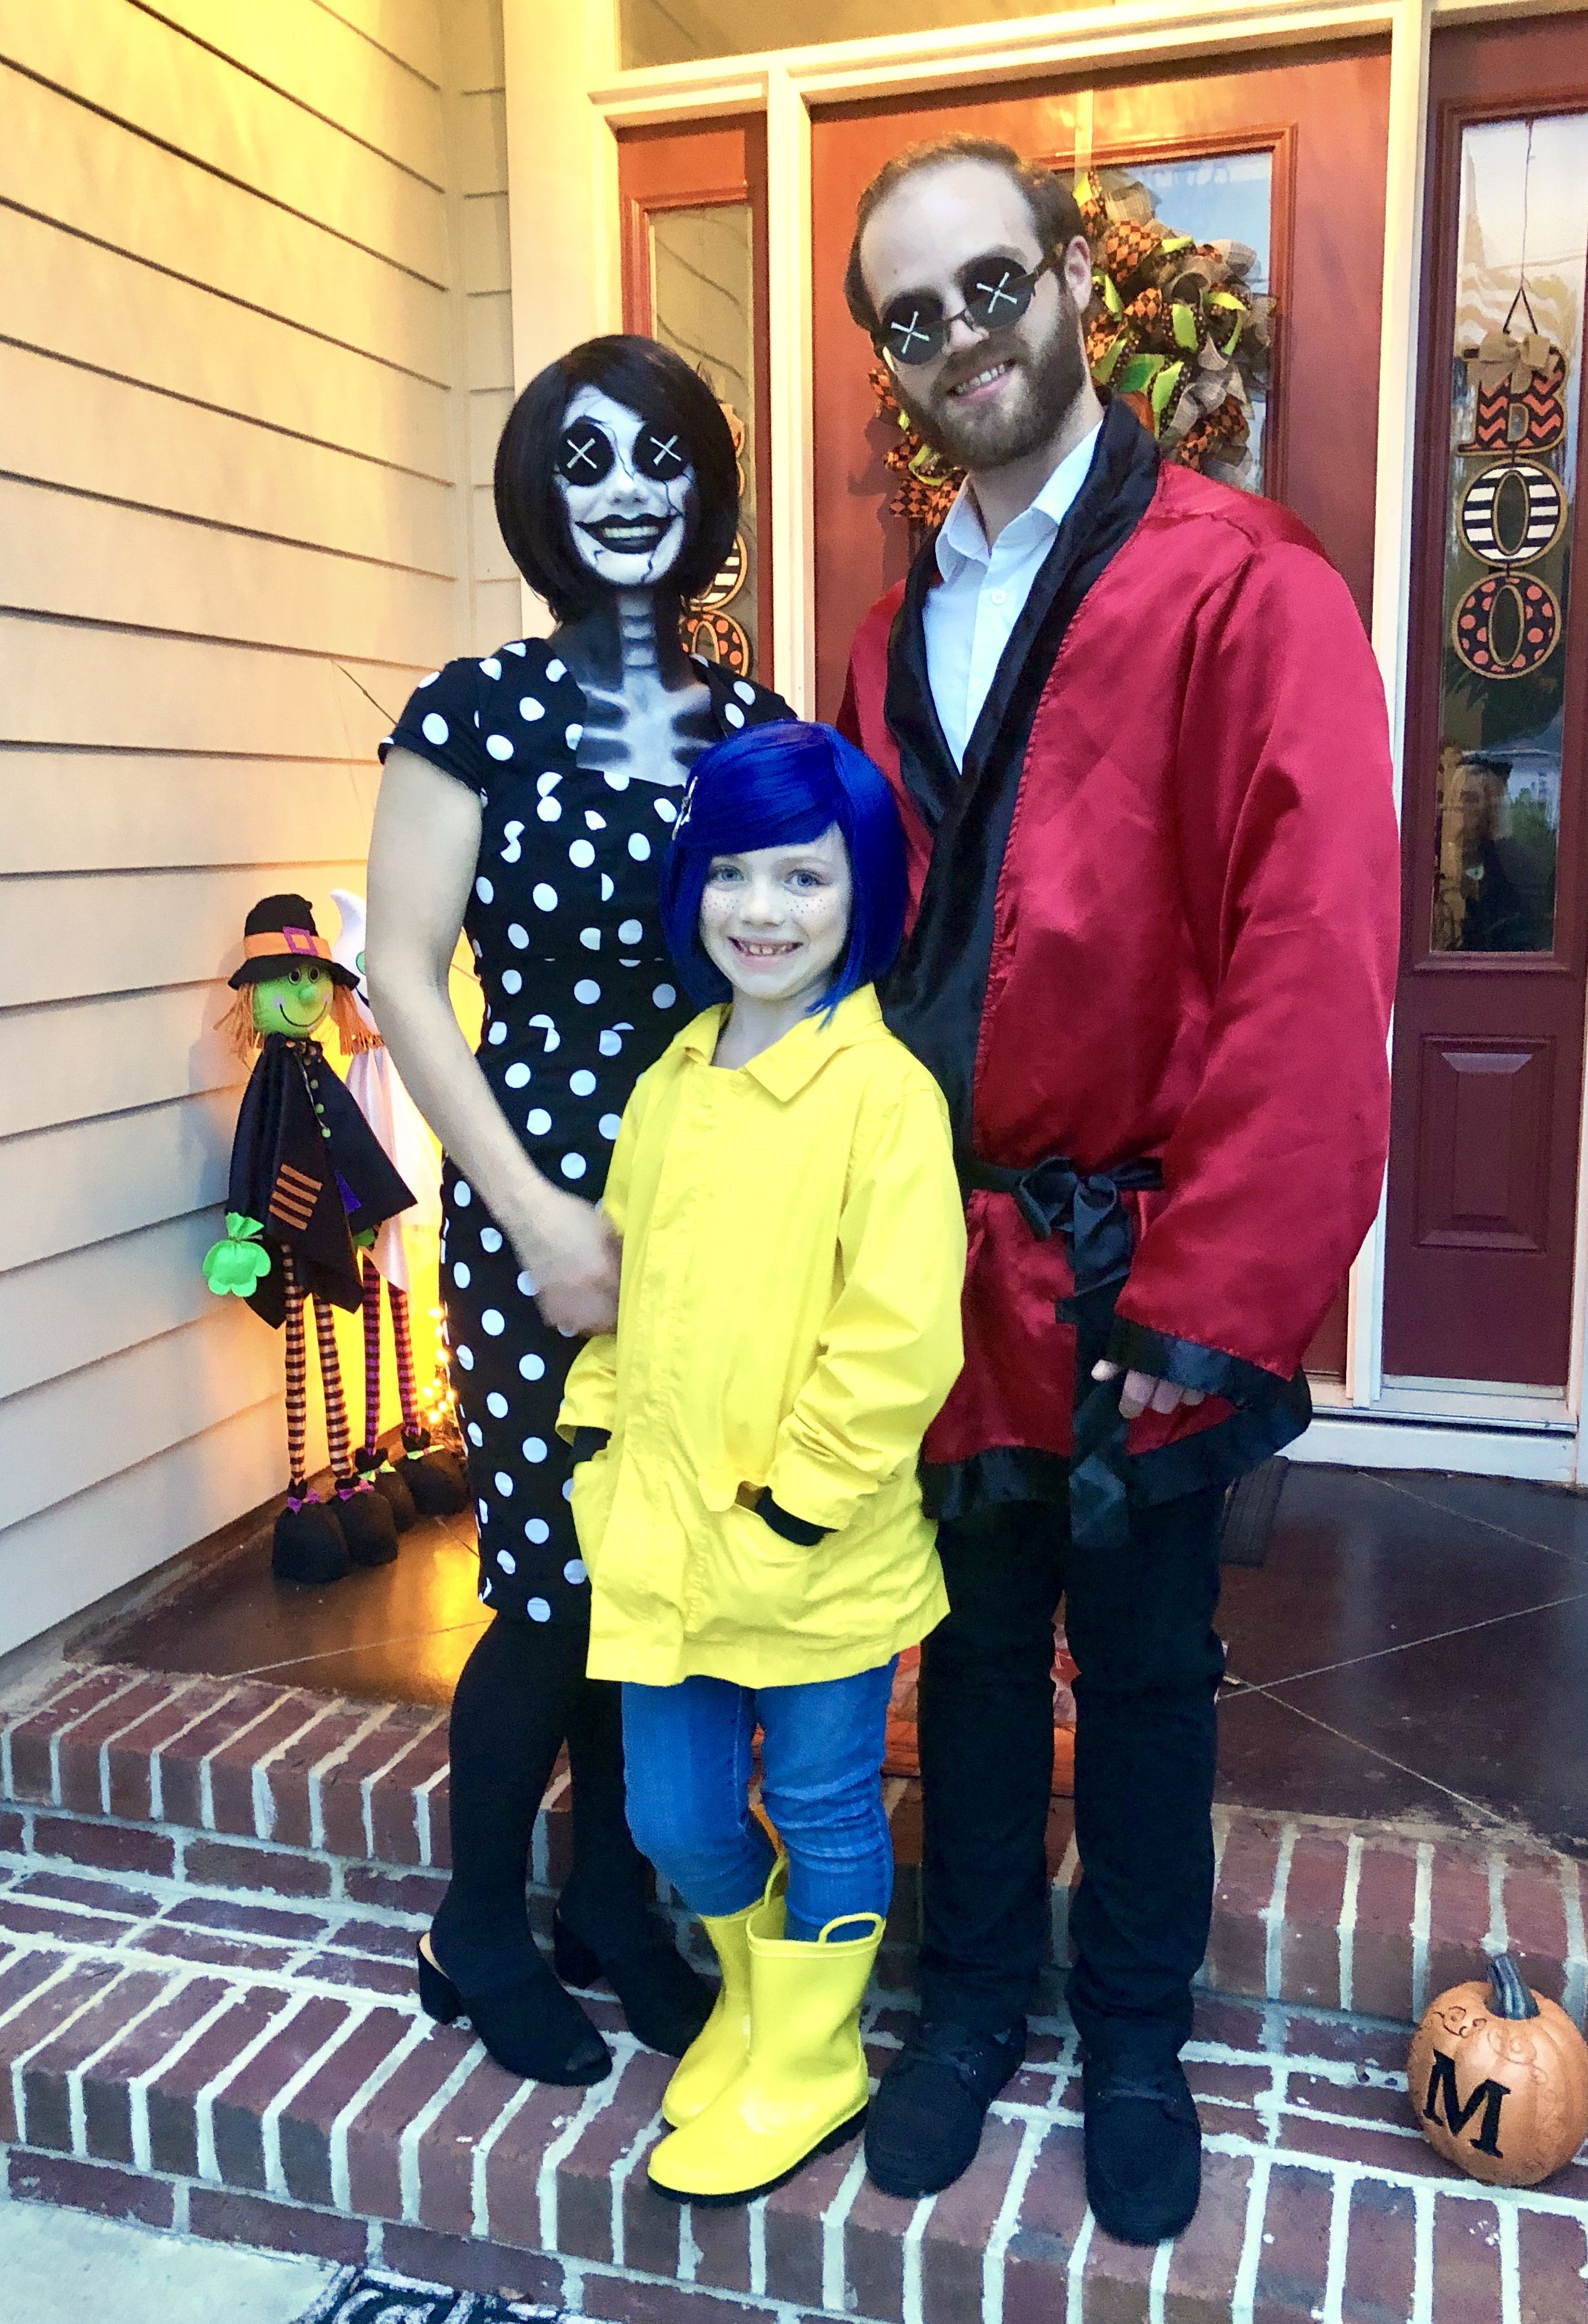 Coraline Other Mother Other Father Family Halloween Costume Coraline Halloween Costume Family Halloween Costumes Family Halloween